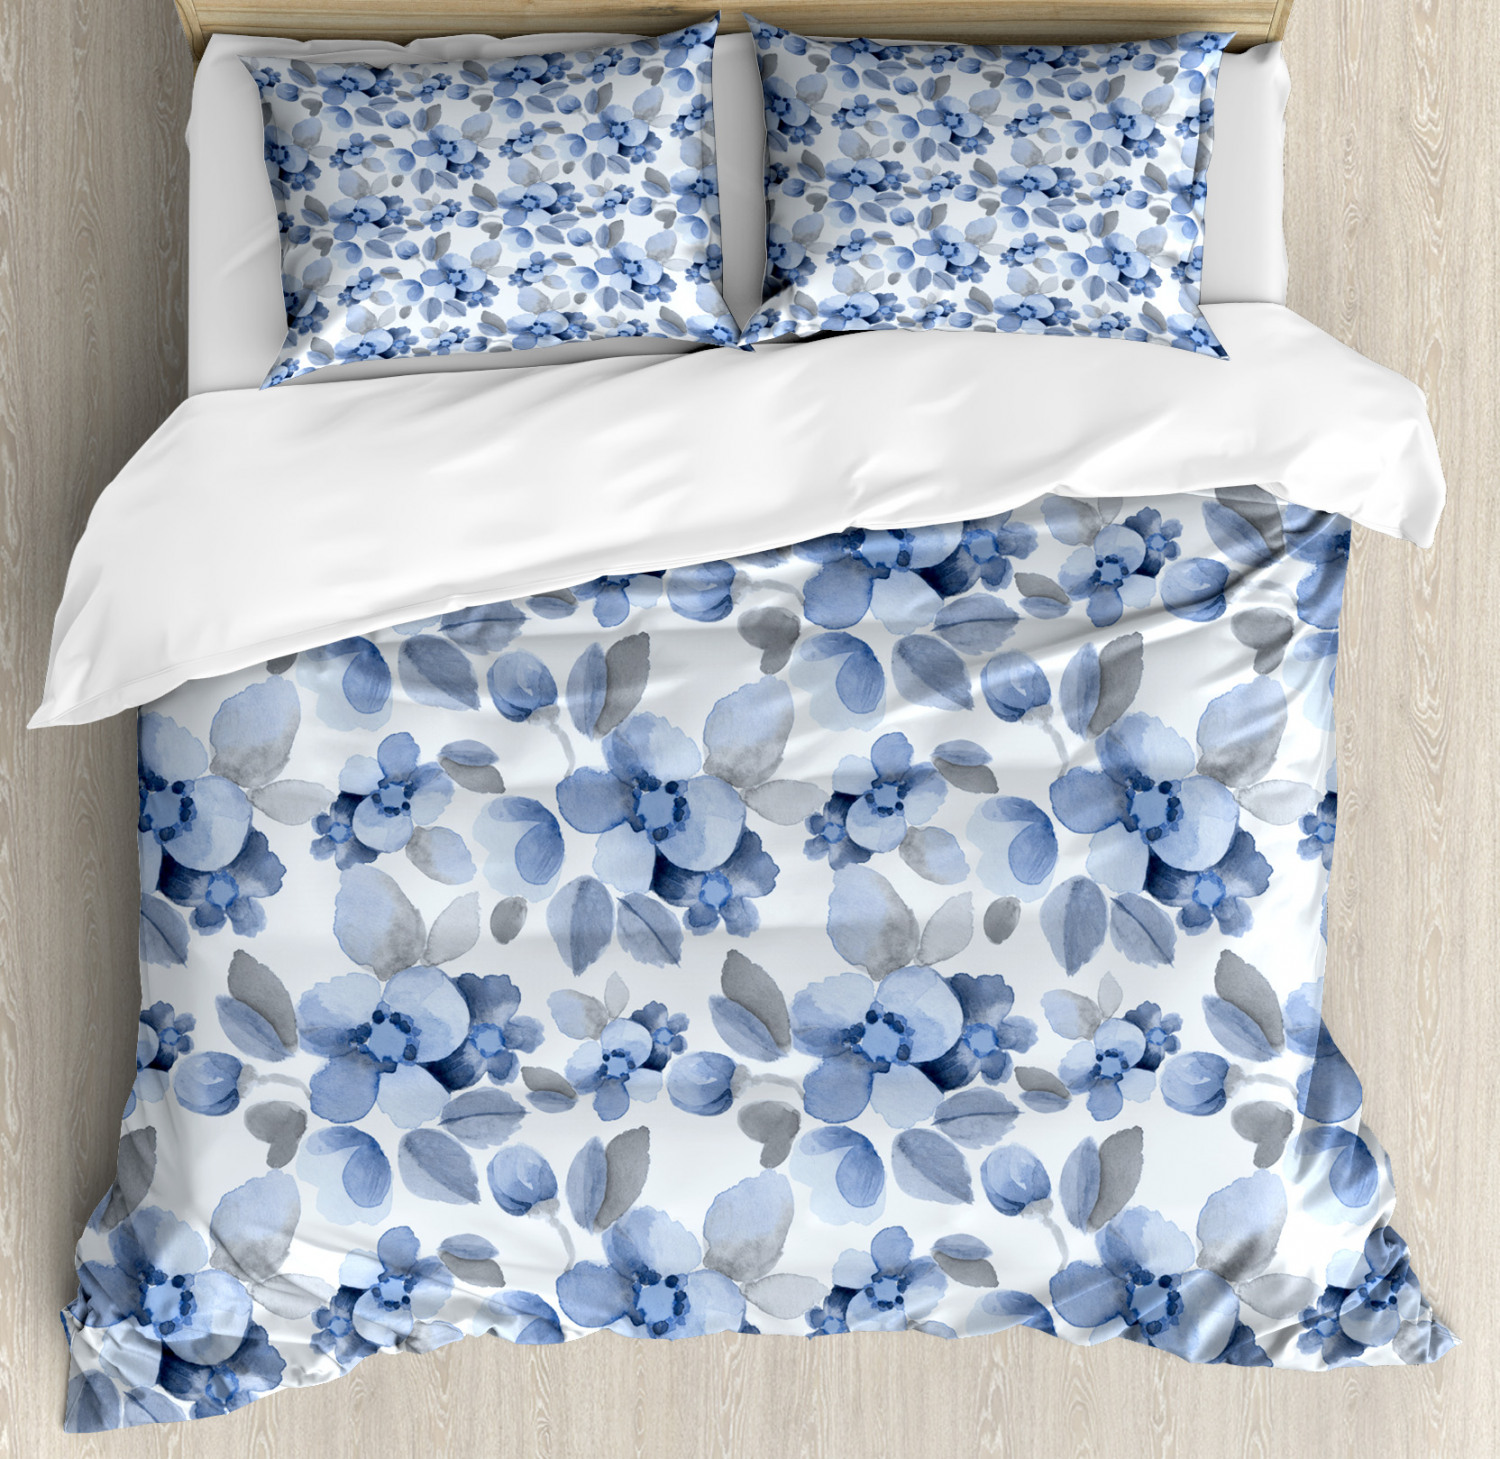 Romance Duvet Cover Set with Pillow Shams Paintbrush Camelia Leaf Print